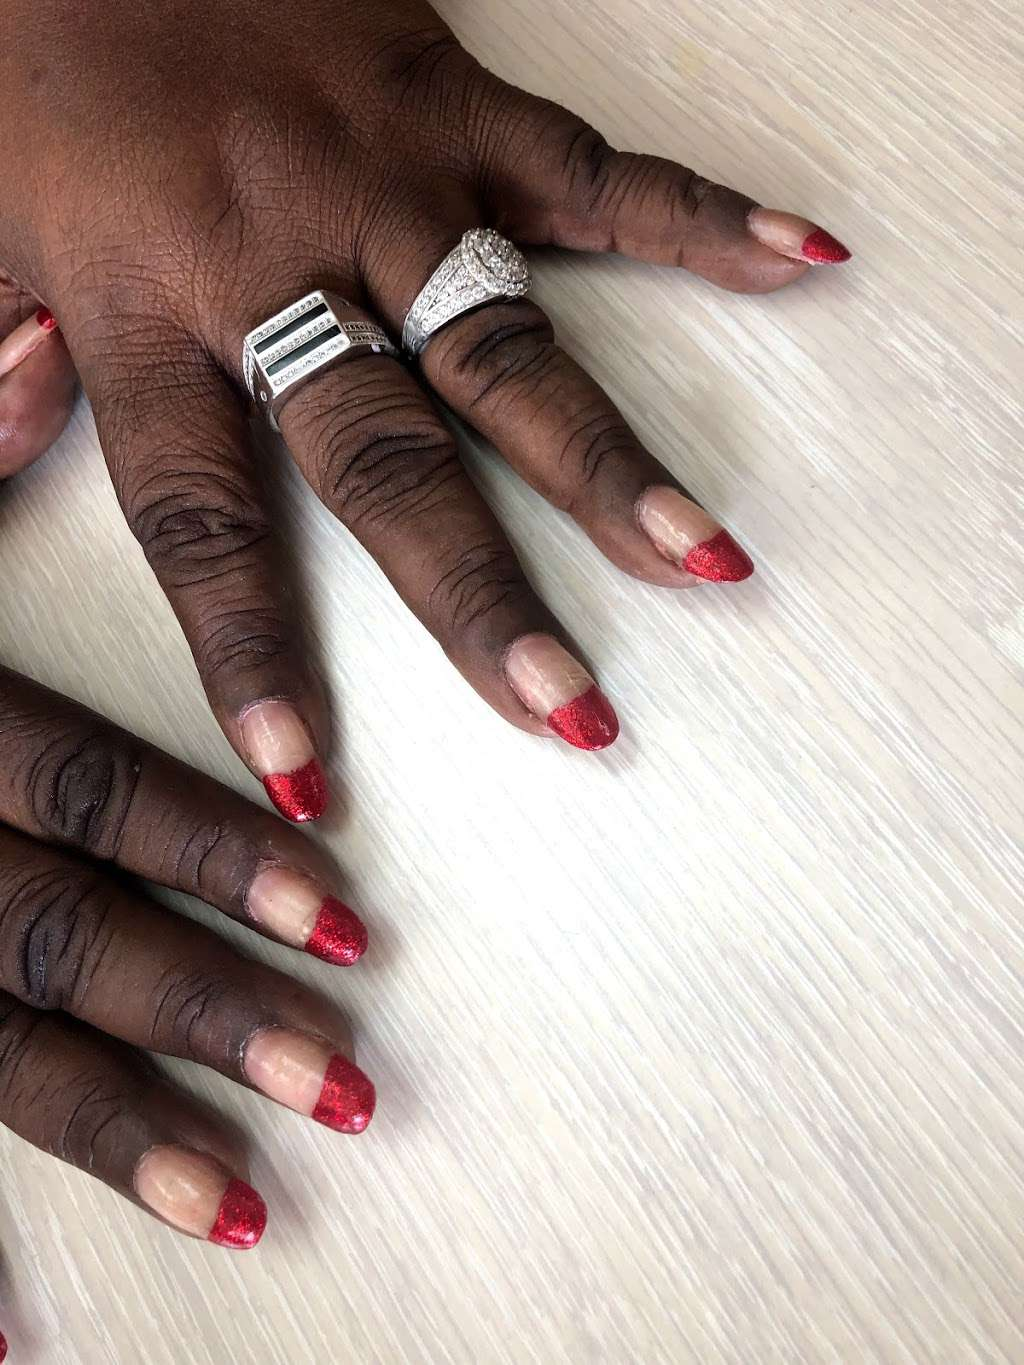 Happy Nails Brows & Lashes Bar - hair care  | Photo 7 of 10 | Address: 1627 E 95th St, Chicago, IL 60617, USA | Phone: (773) 221-3056